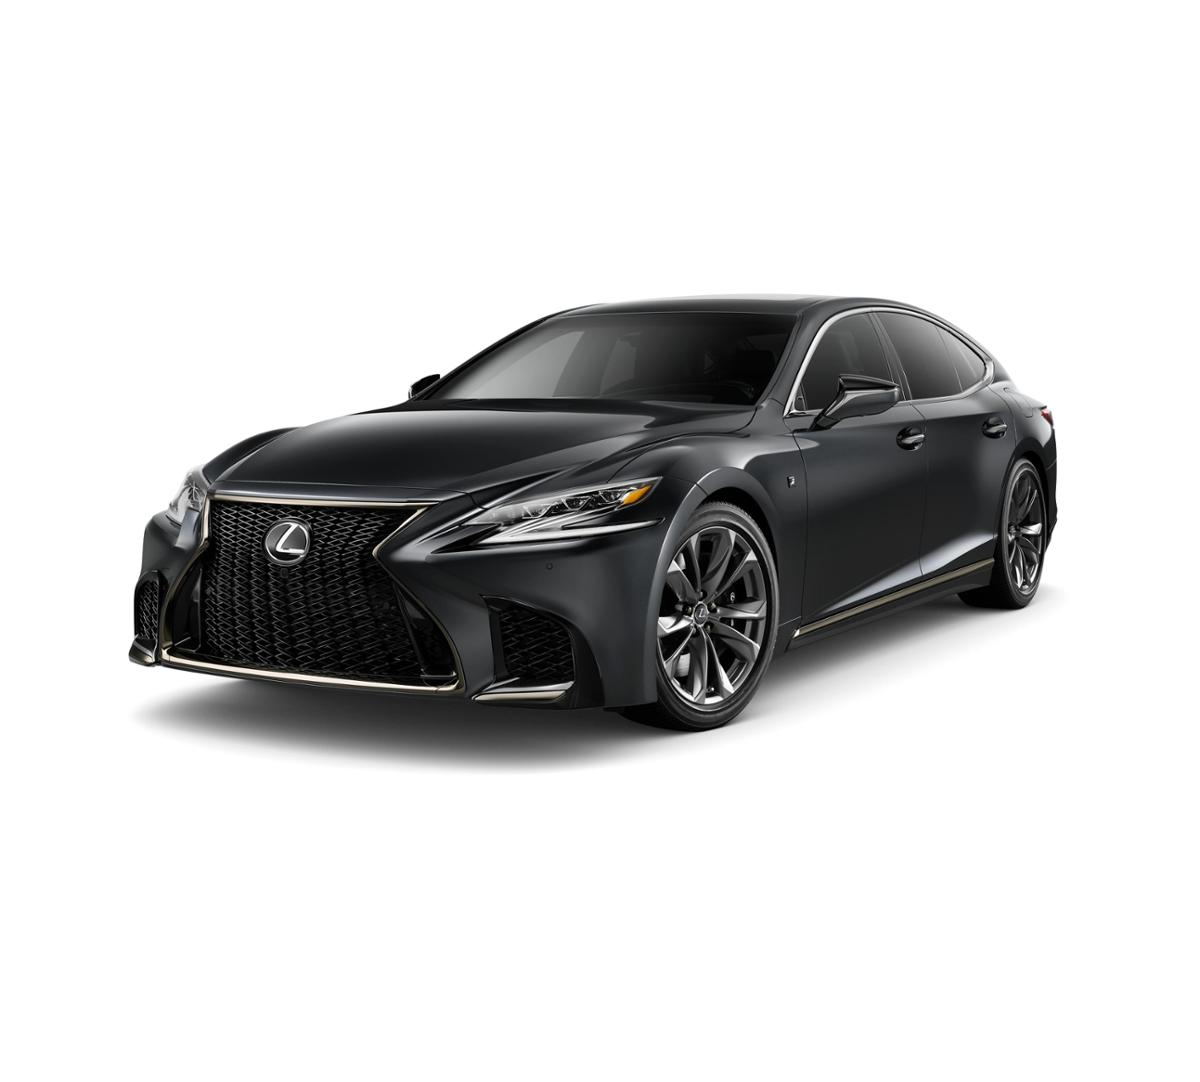 Lexus 2008 Ls460 For Sale: Fort Worth New 2018 Lexus LS 500 Caviar: Car For Sale In